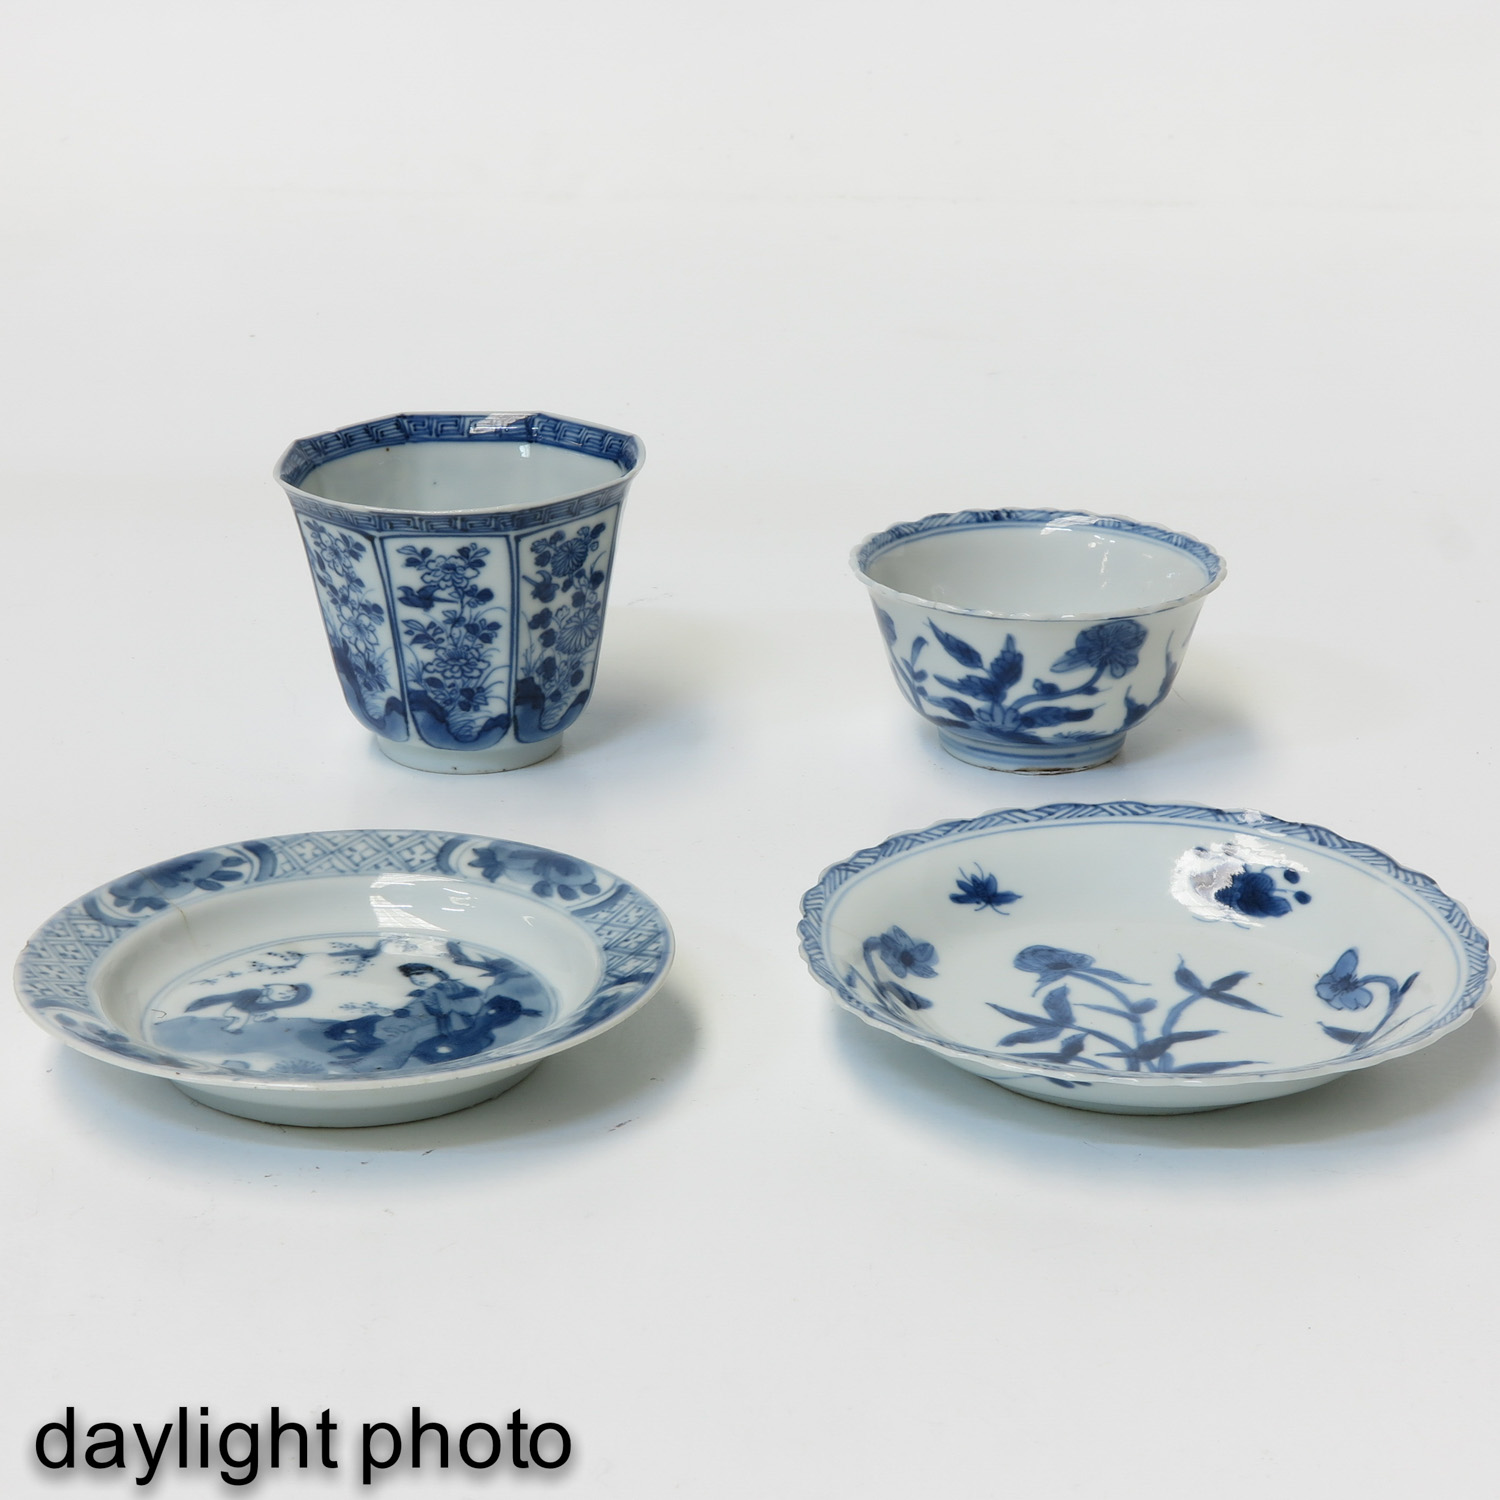 A Collection of Cups and Saucers - Image 9 of 10